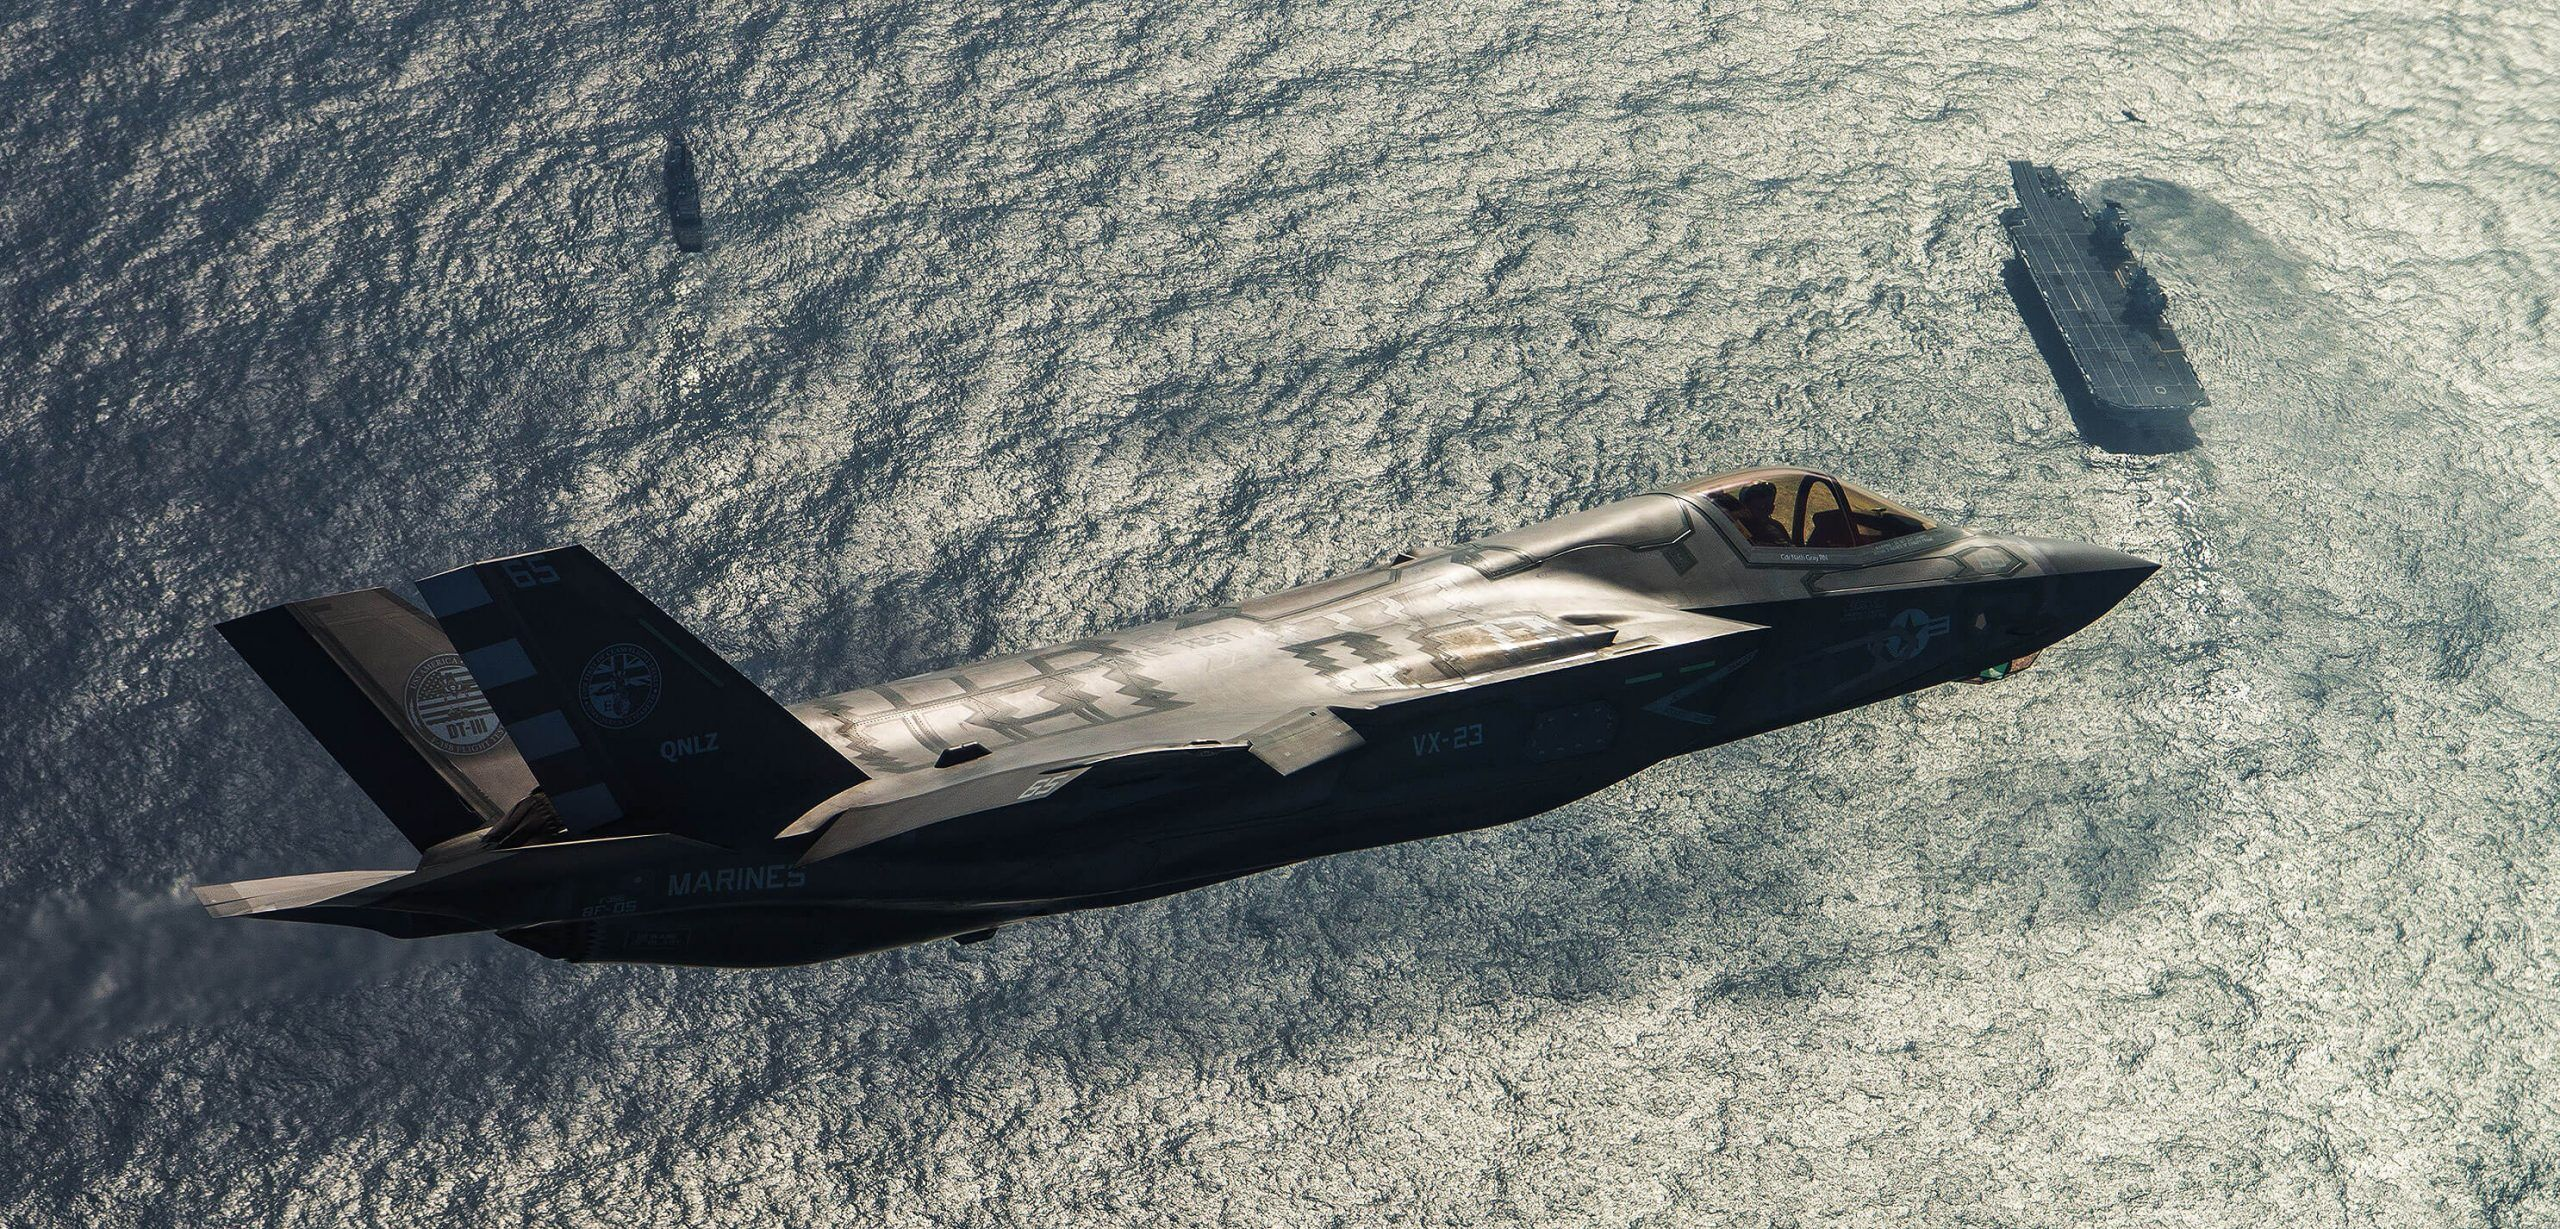 RAF plan for F-35 split-buy undermines aircraft carrier programme